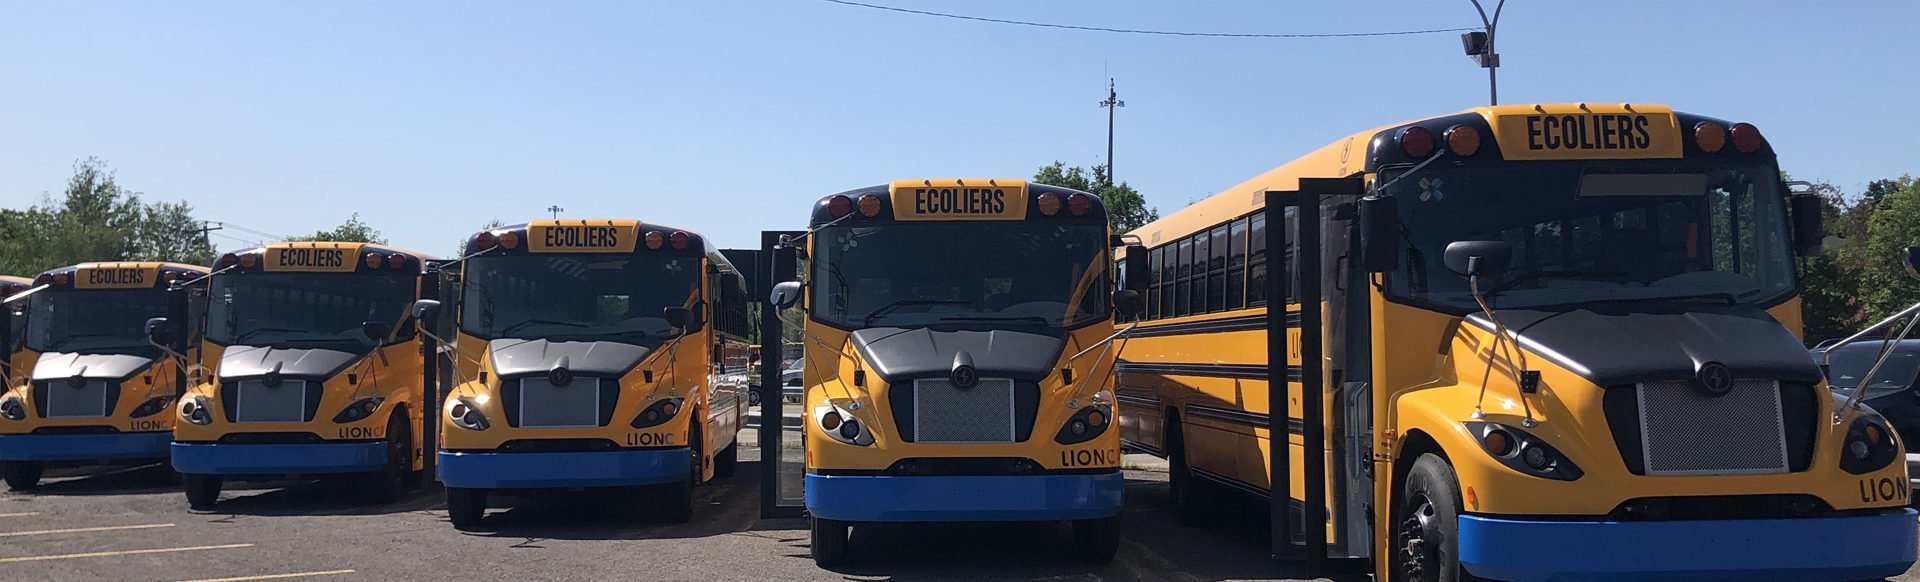 Transdev Canada invests €3 million in electric school buses and accelerates its energy transition